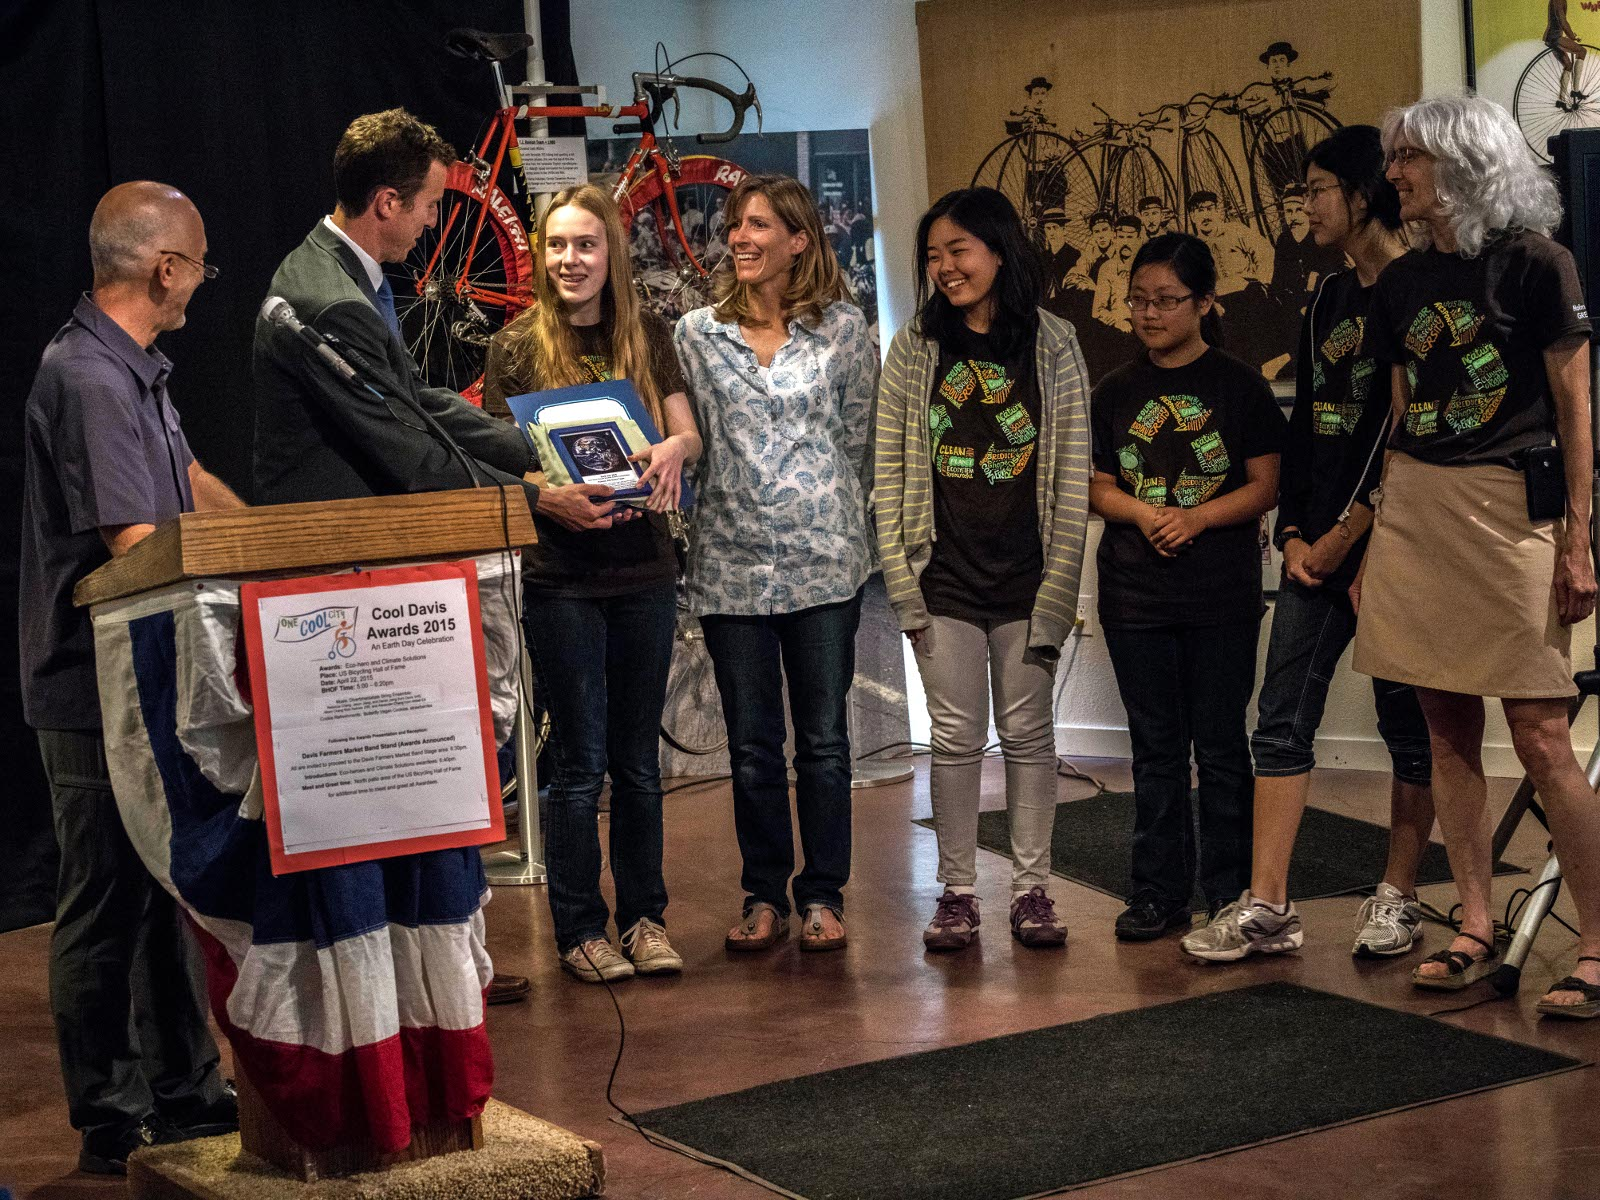 Mayor Dan Wolk presents Hailey Shapiro with a Cool Davis Climate Solution award to honor the Holmes Green Team for its pro-active efforts to significantly reduce waste on the Holmes campus. Hailey was recognized as an outstanding team volunteer and teachers, Keri Hawkins and Martha Quenon were honored for their leadership. Additional Green Team members Mengxuan Zhany, Louisa Chan, and JuHye Mun joined the stage party.